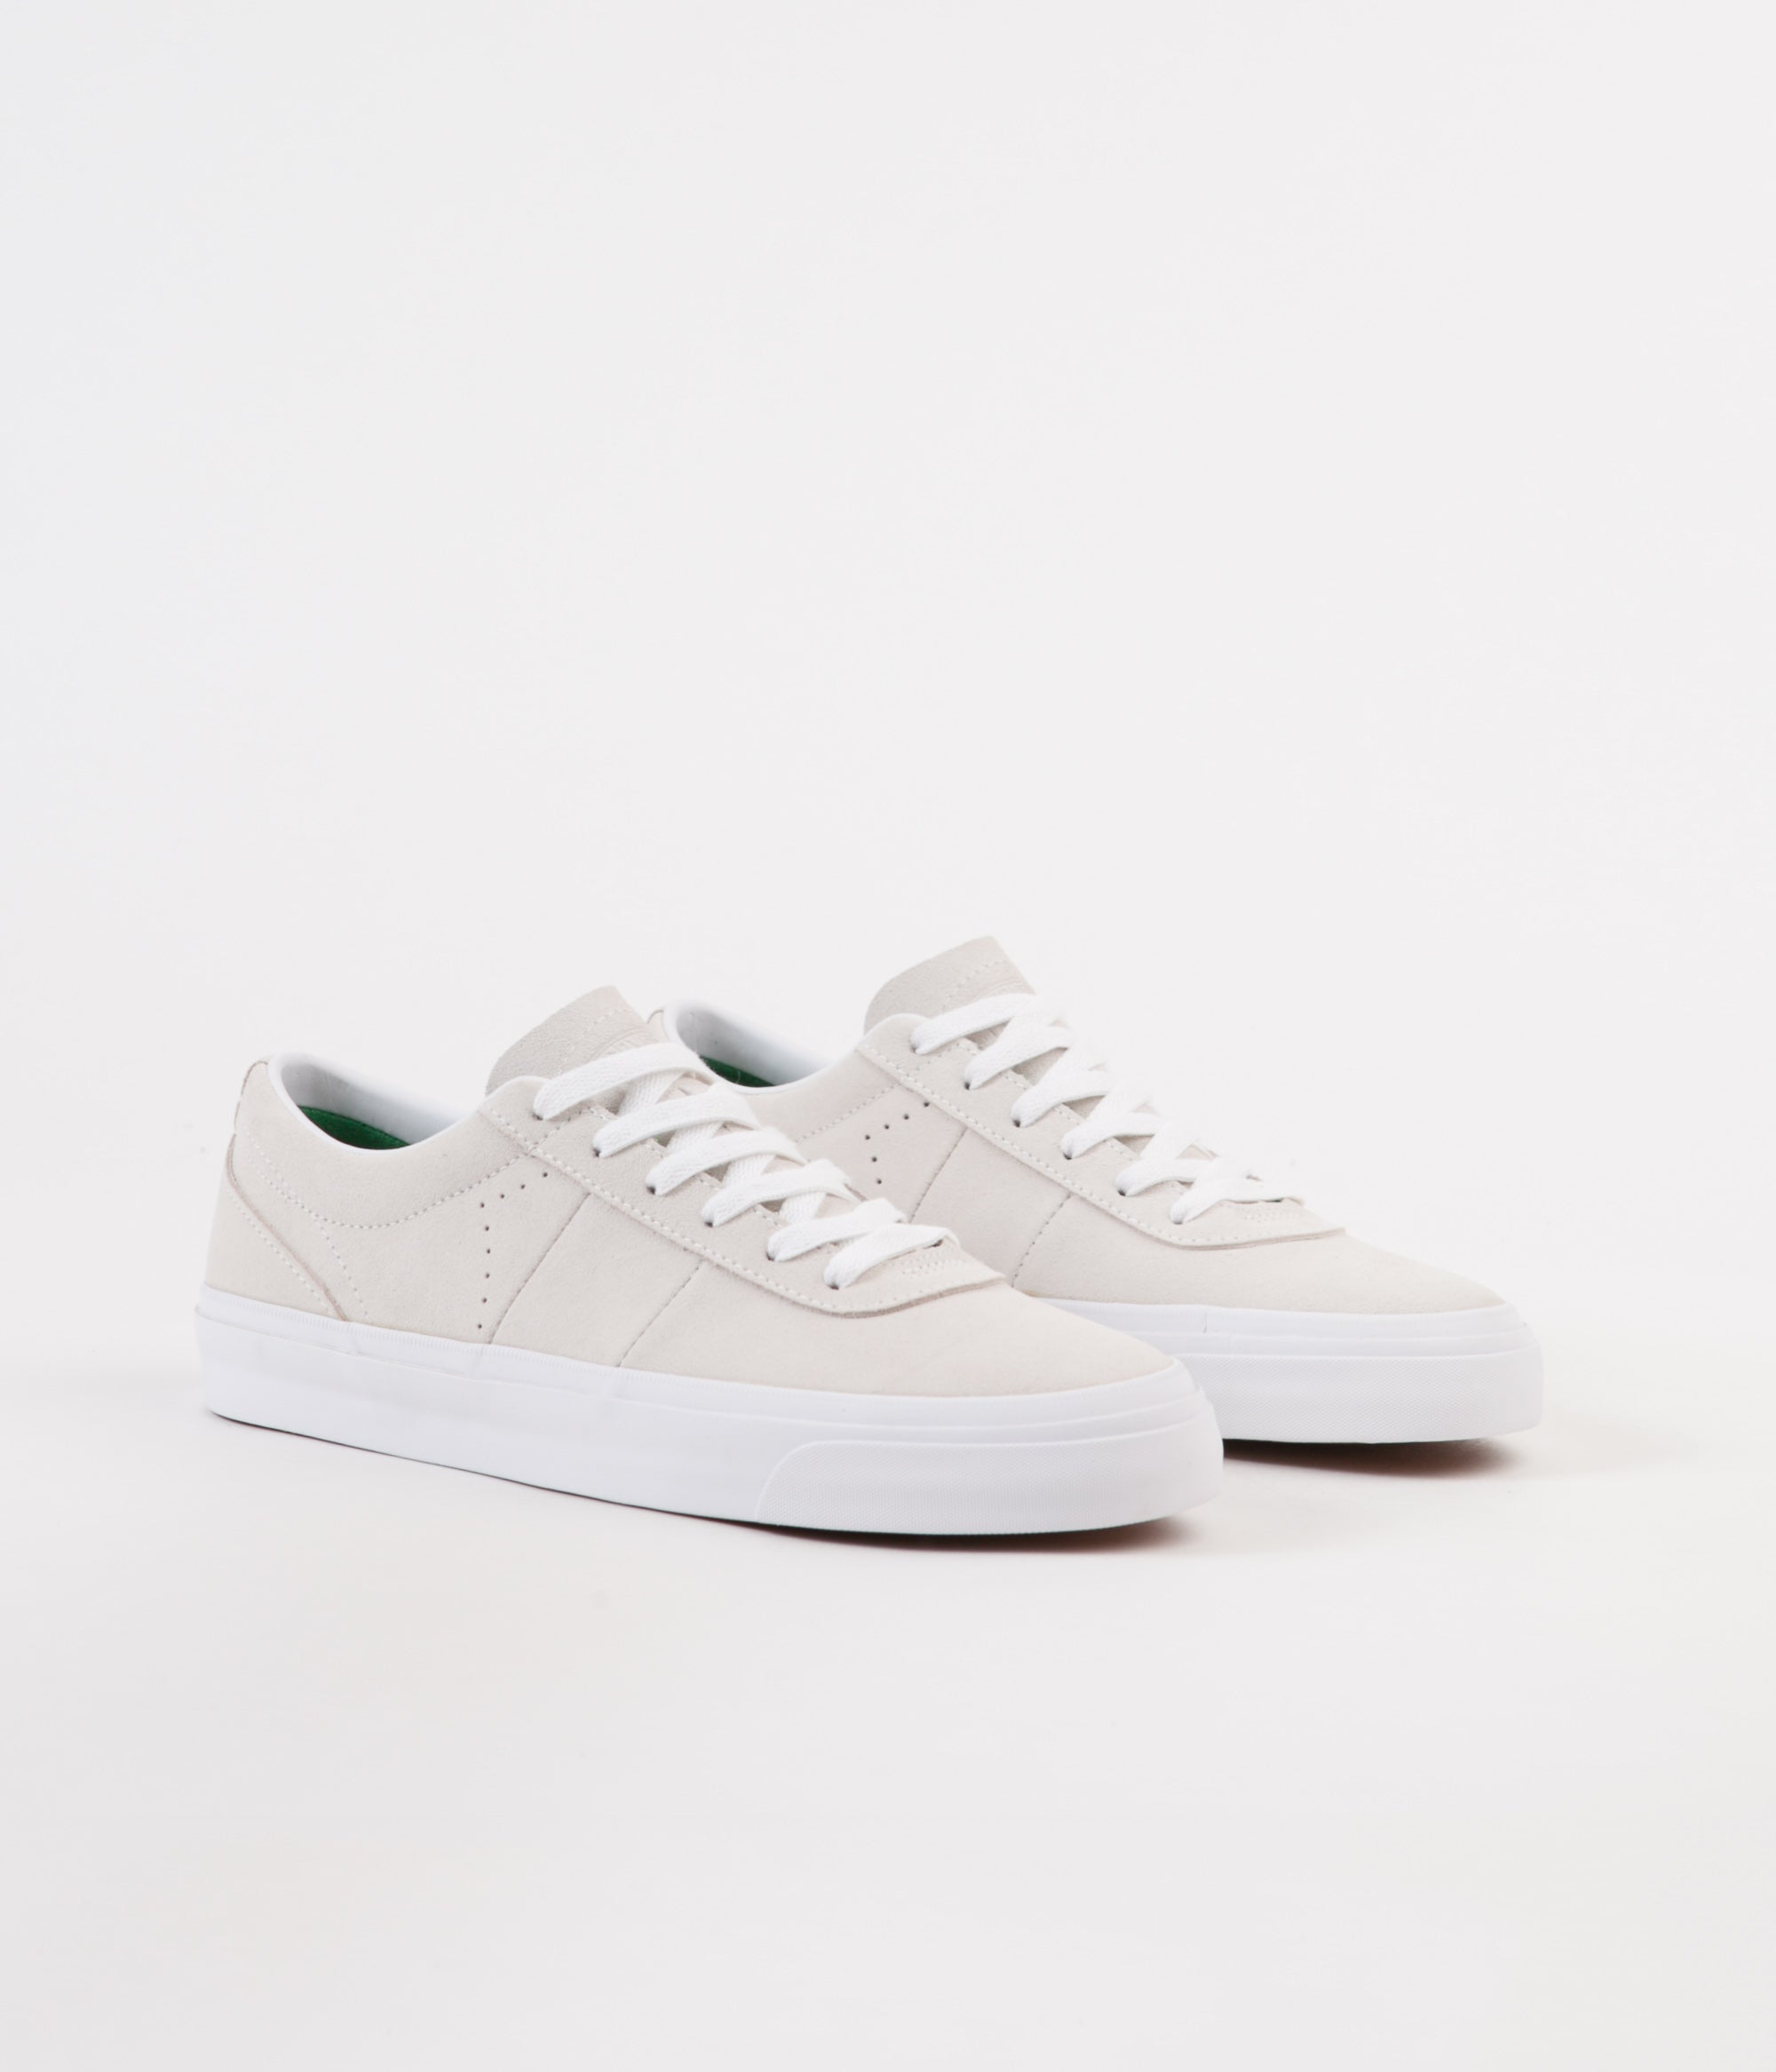 Converse One Star CC Pro Ox Shoes - White / Green / White